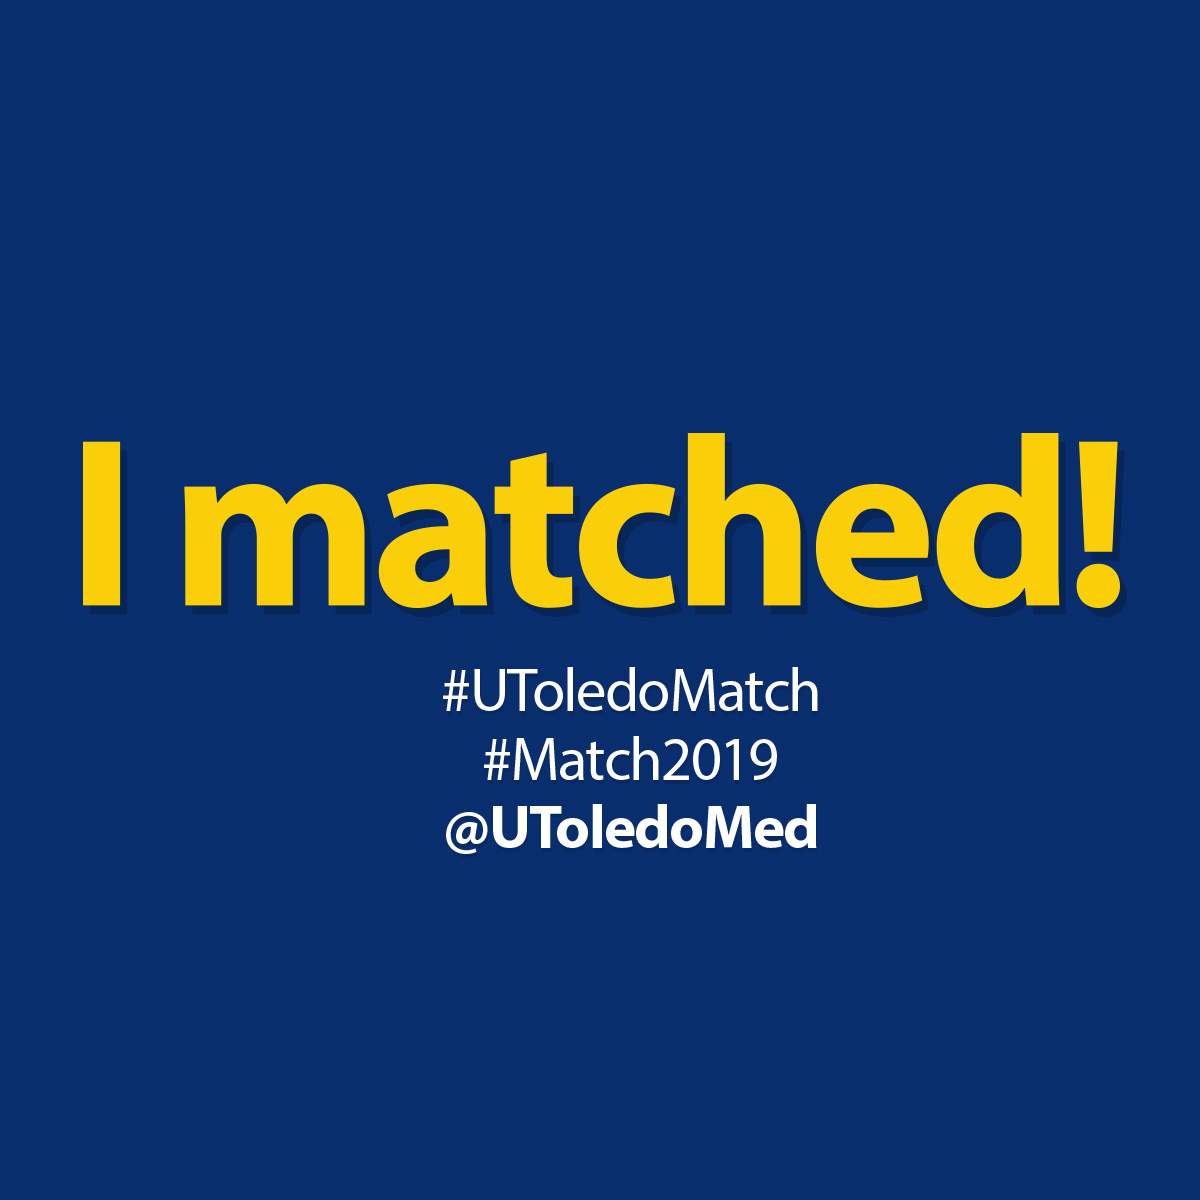 Match Day 2019 social media image